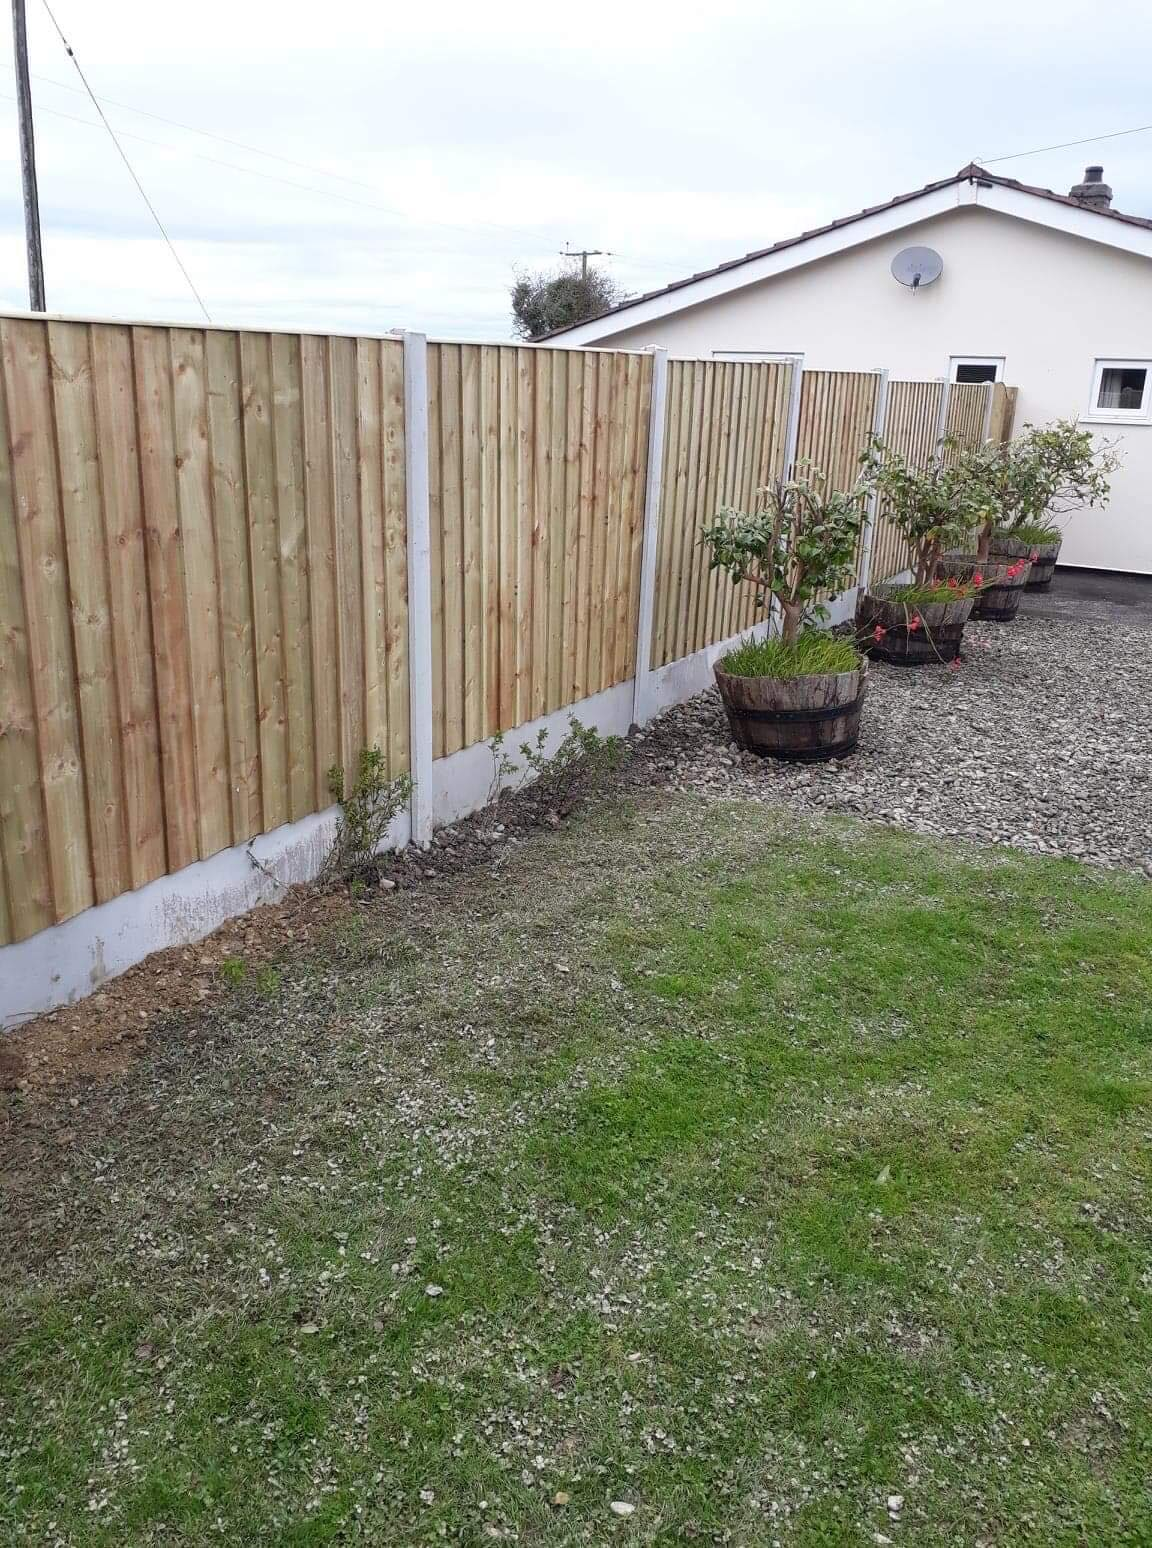 Straight edged top of panel fencing in concrete base. Potted trees in front.